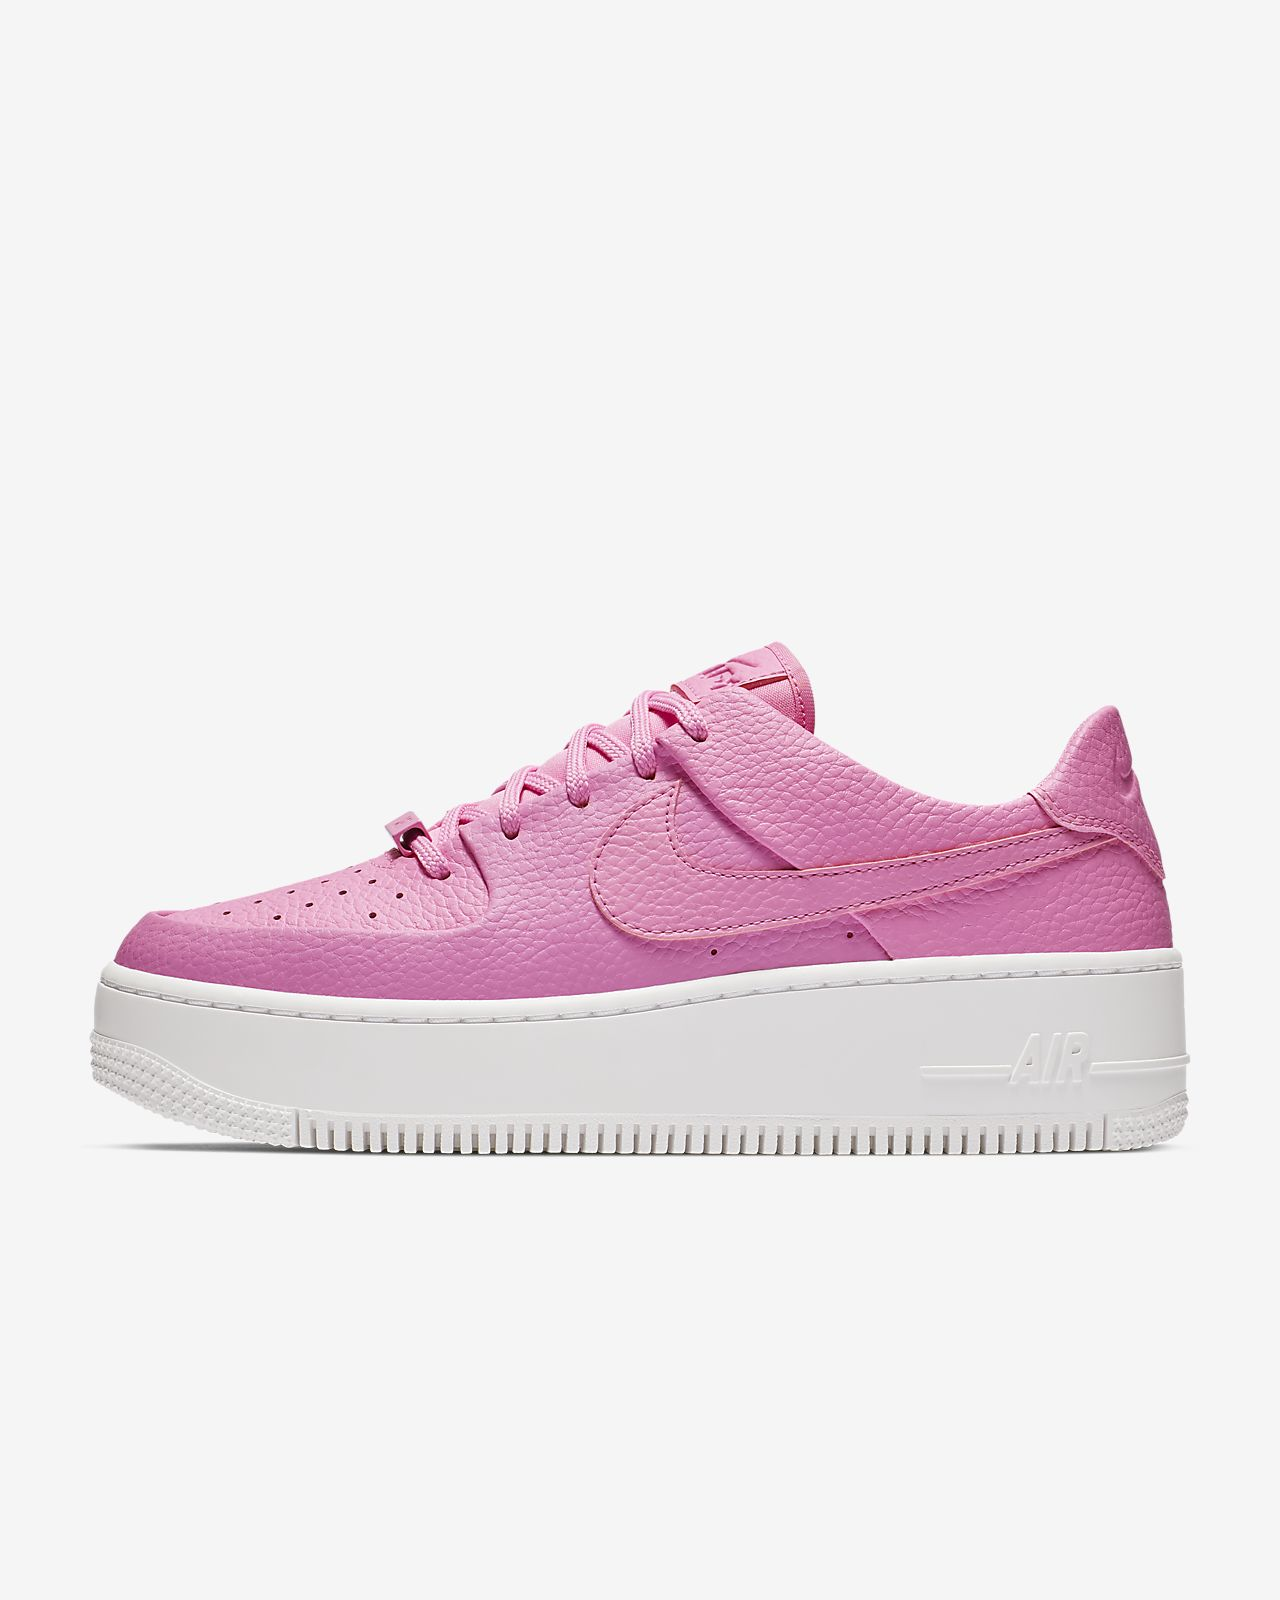 23b481f03bce Nike Air Force 1 Sage Low Women s Shoe. Nike.com